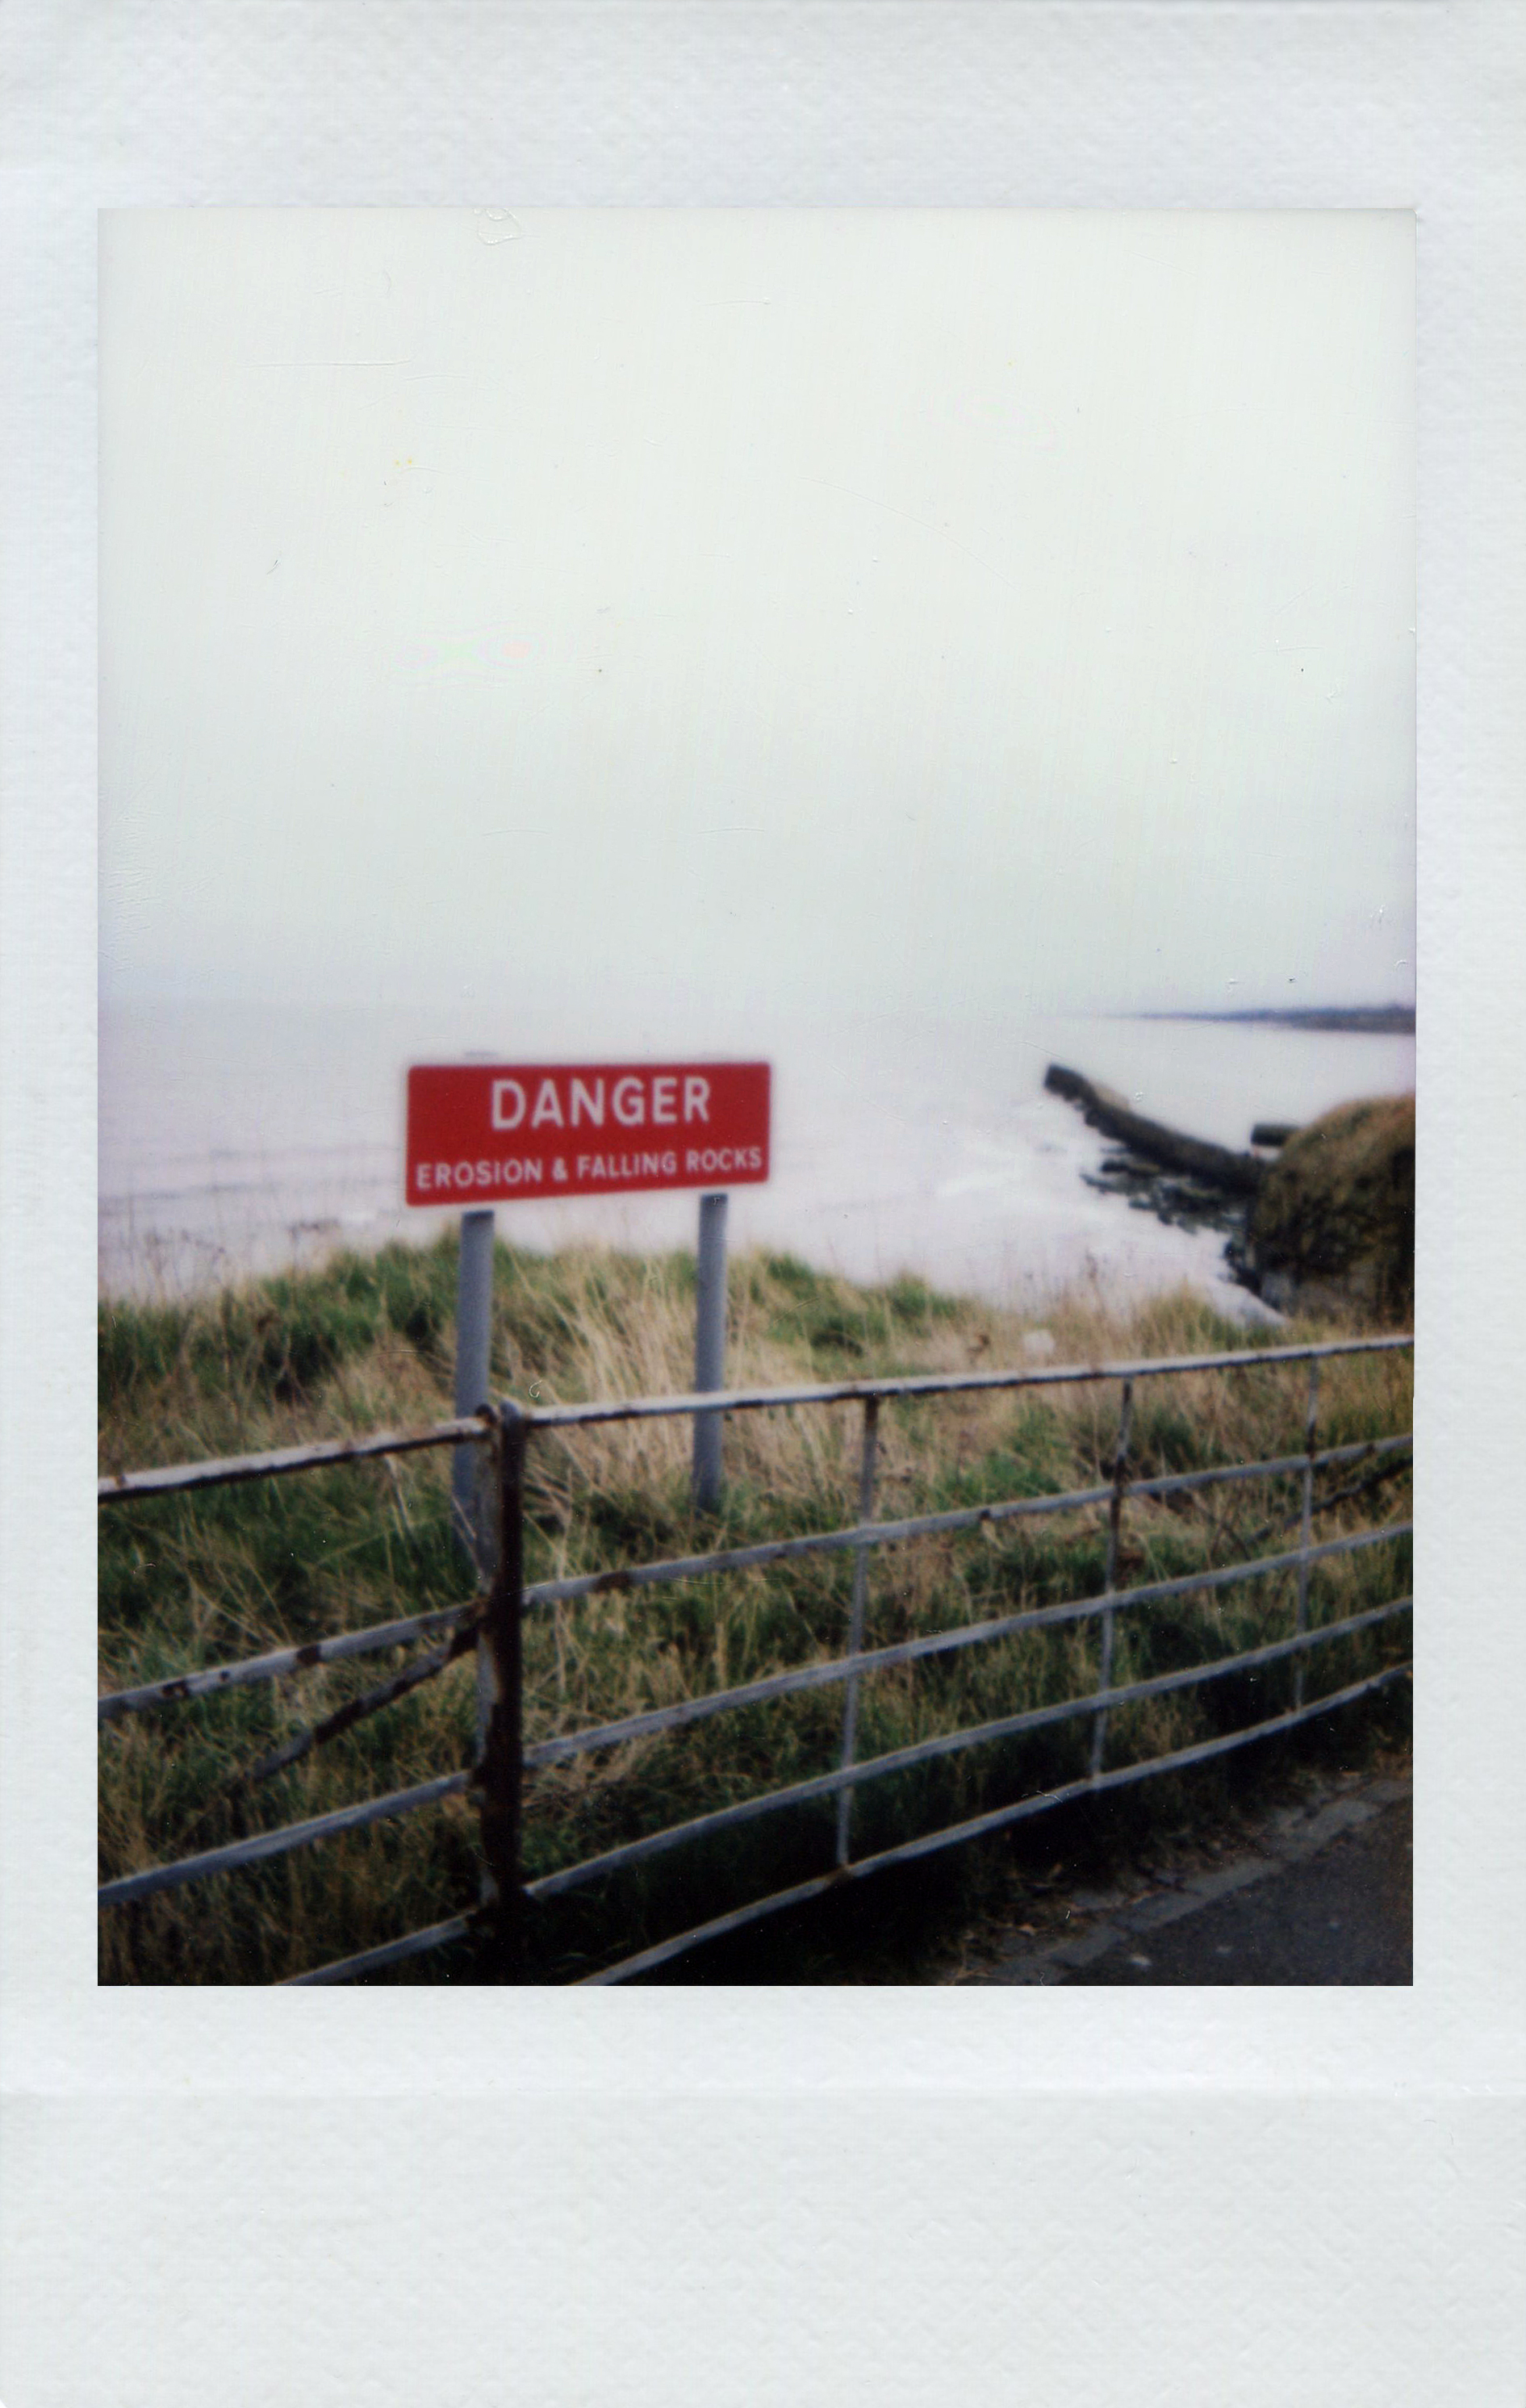 9 danger sign.jpg